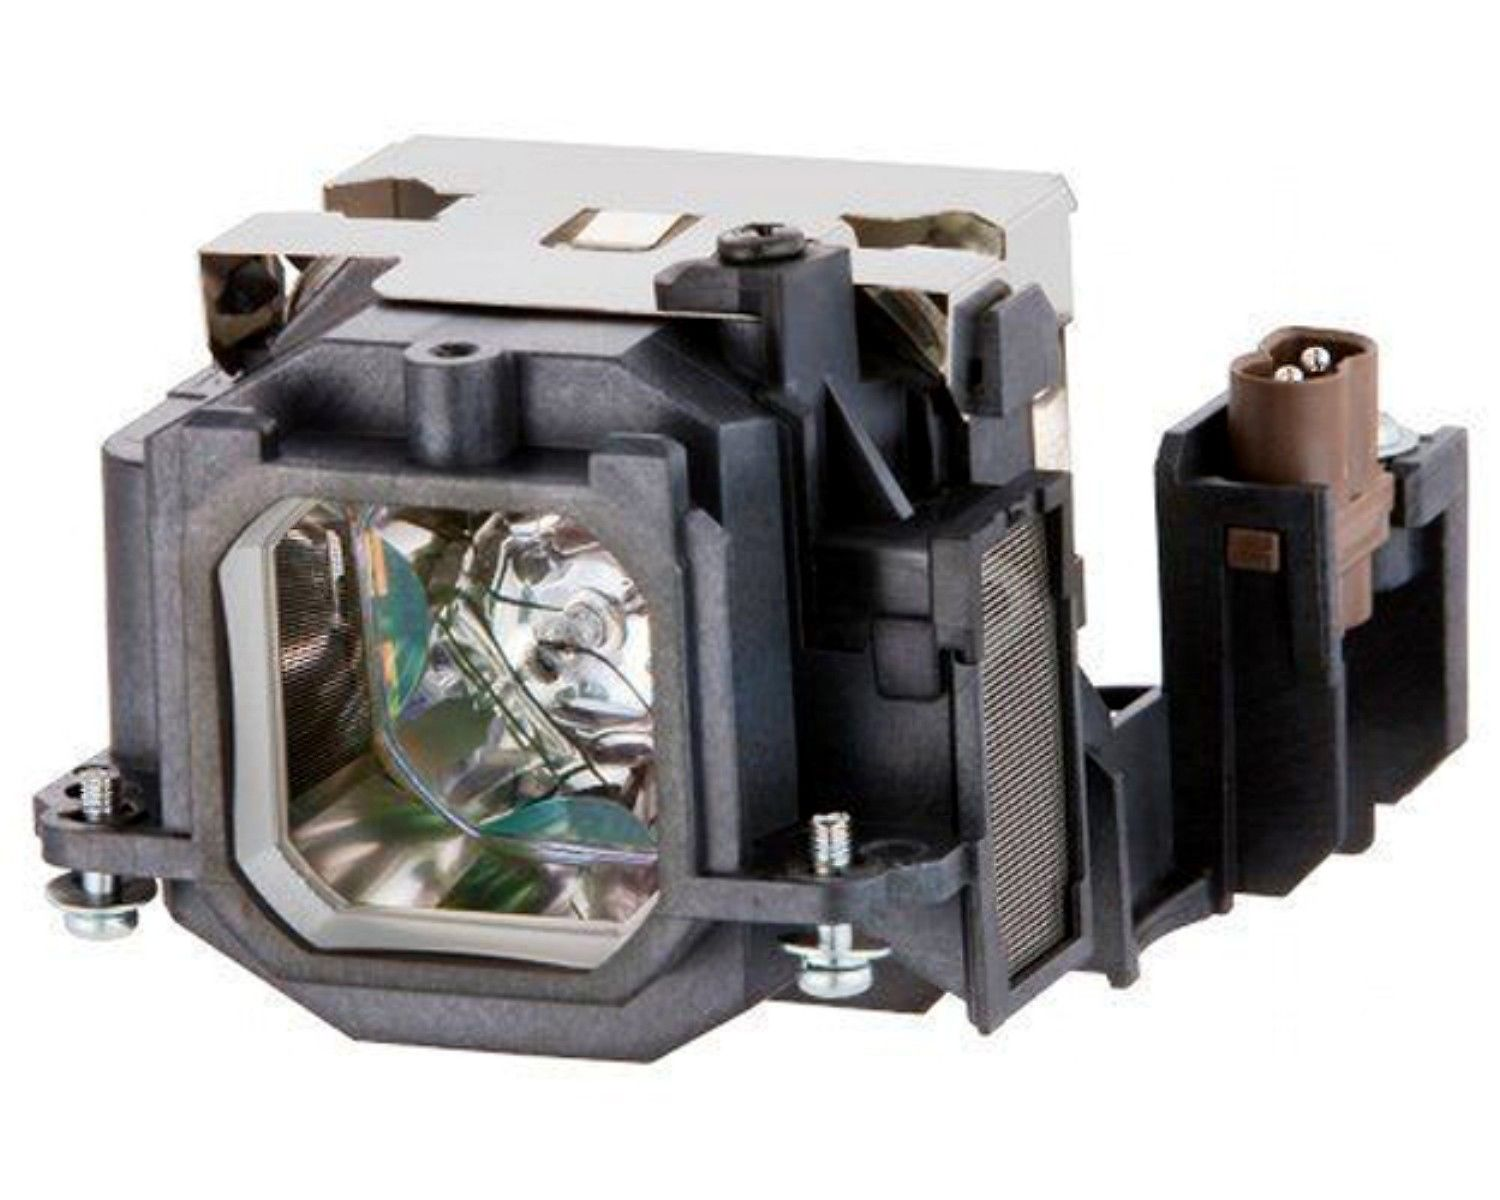 Projector Lamp Bulb ET-LAB2 ETLAB2 for Panasonic PT-LB1 PT-LB2 PT-LB1EA PT-LB2EA PT-ST10 PT-LB3E With Housing free shipping projector lamp projector bulb with housing et laa410 fit for pt ae8000 pt ae8000u